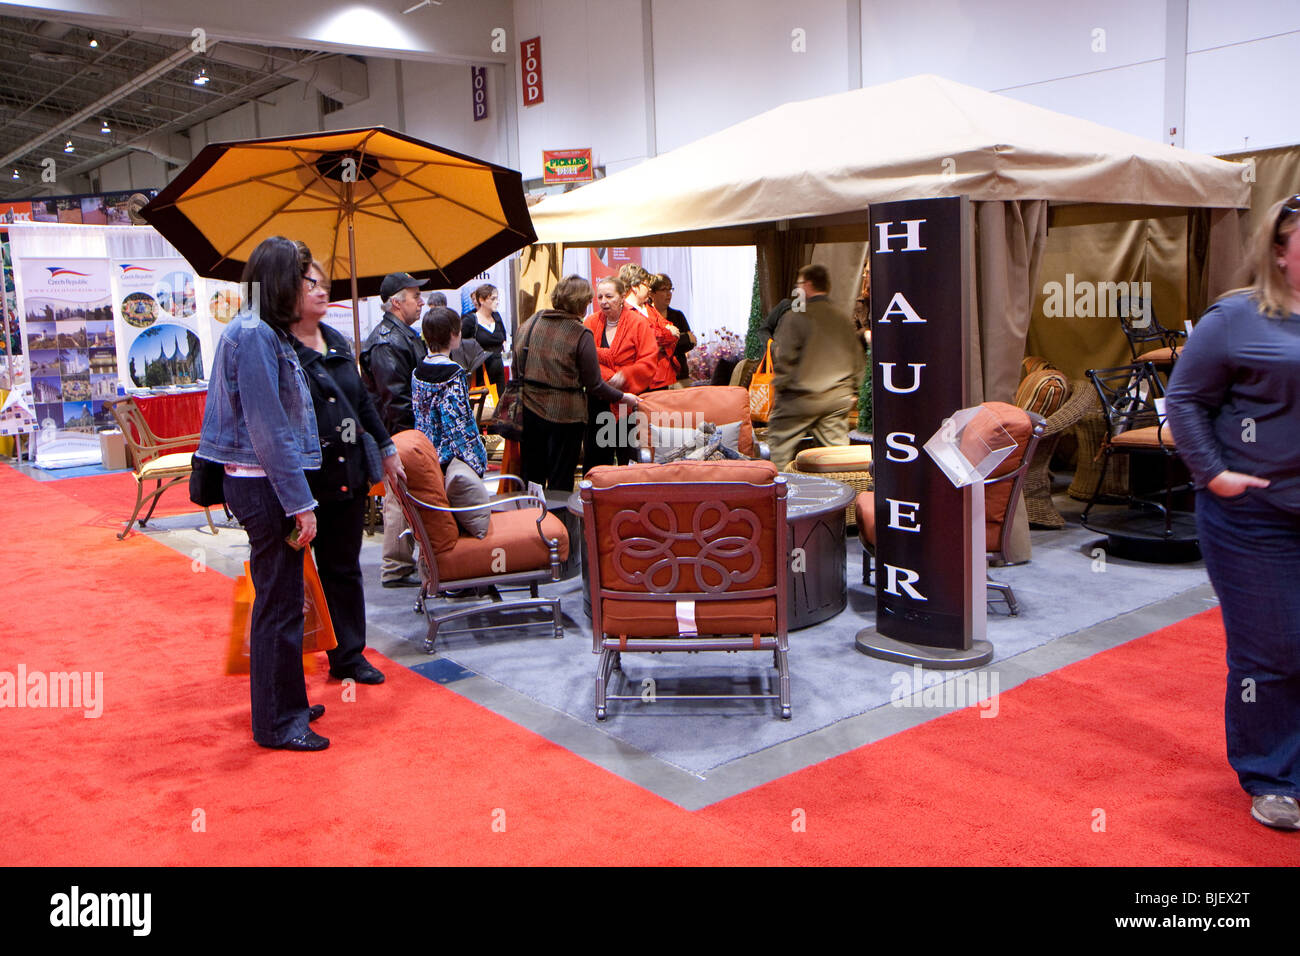 Shoppers Passing By A Booth Selling Outdoor Patio Furnitures For The Spring  Season